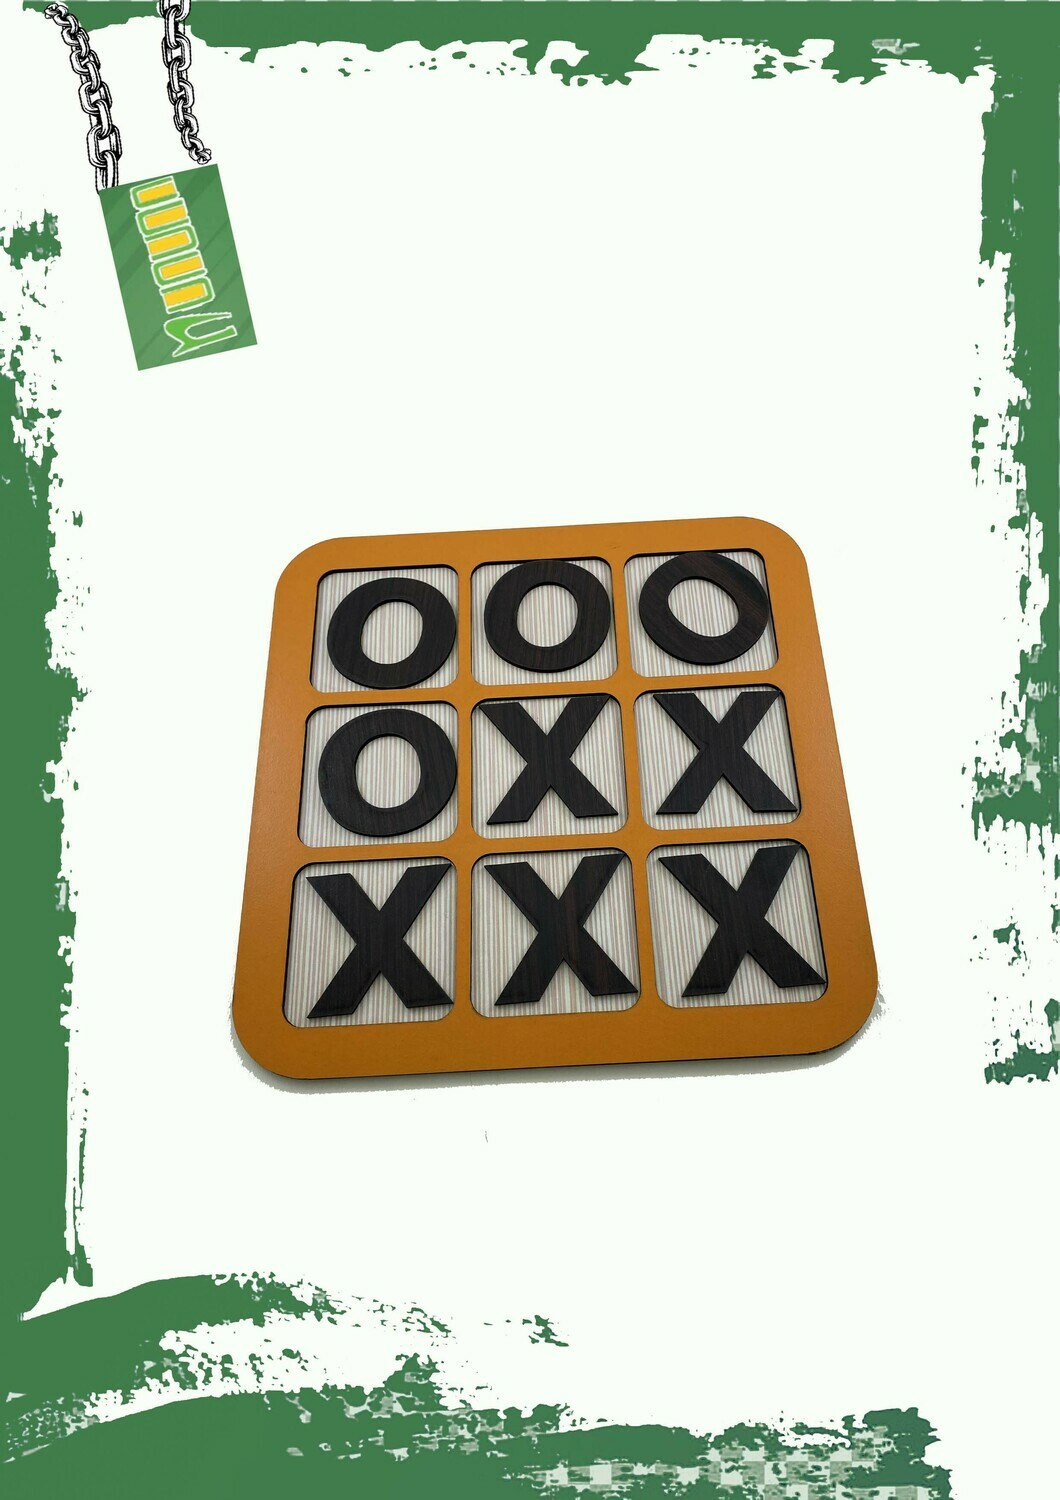 TIC TAC TOE Wooden game - لعبة إكس أو خشب